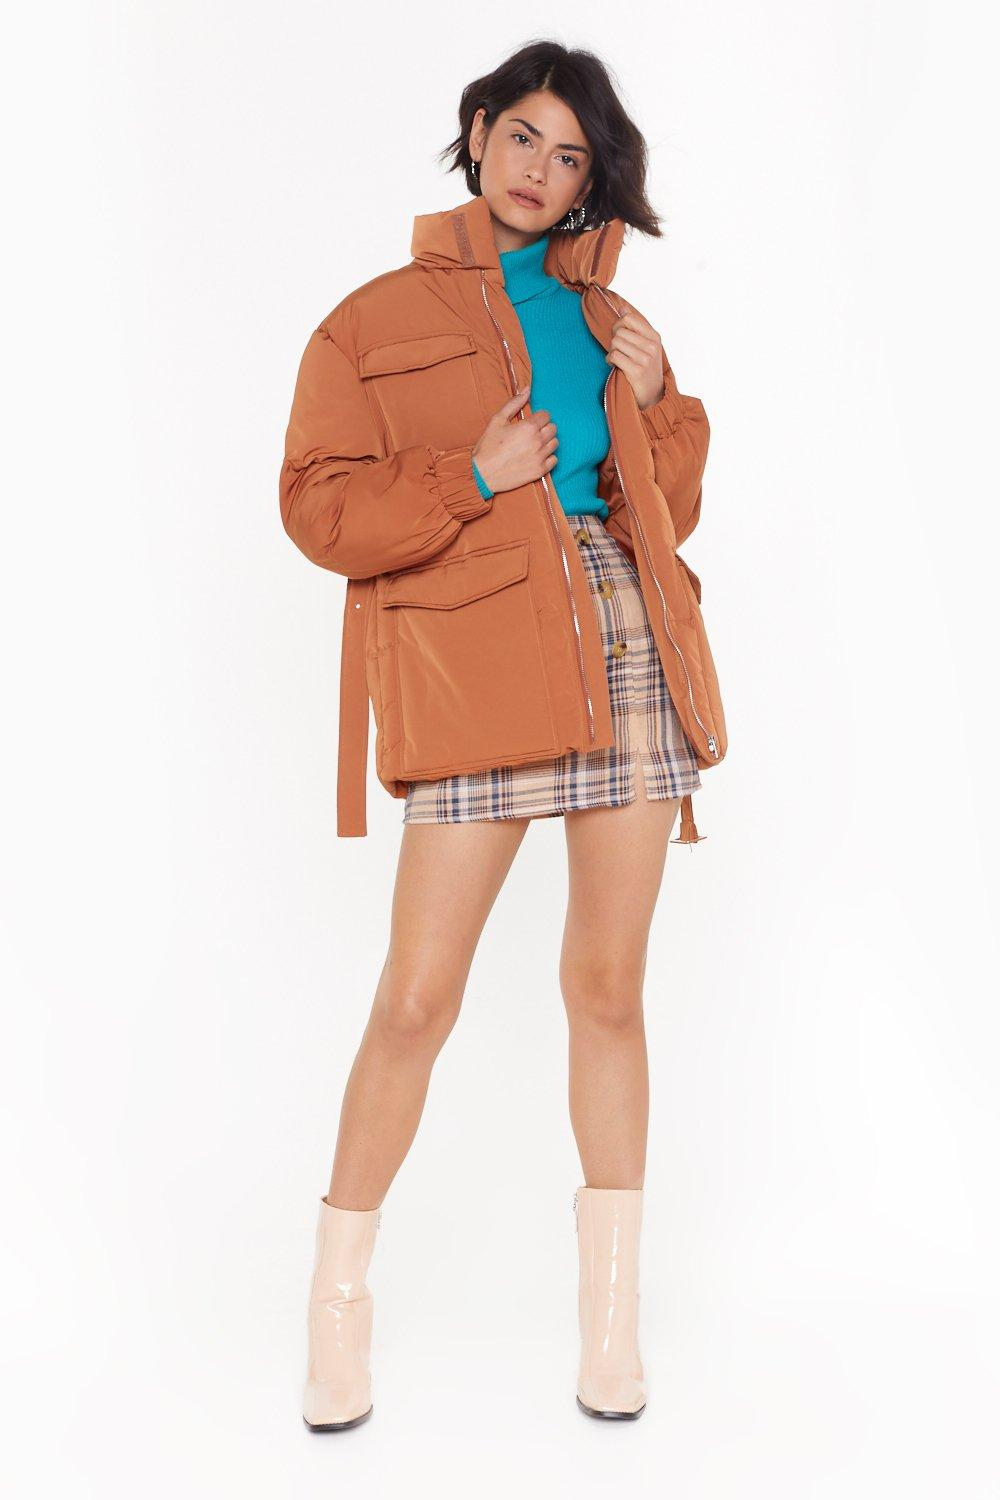 Got 'em Pad High Neck Belted Jacket by Nasty Gal